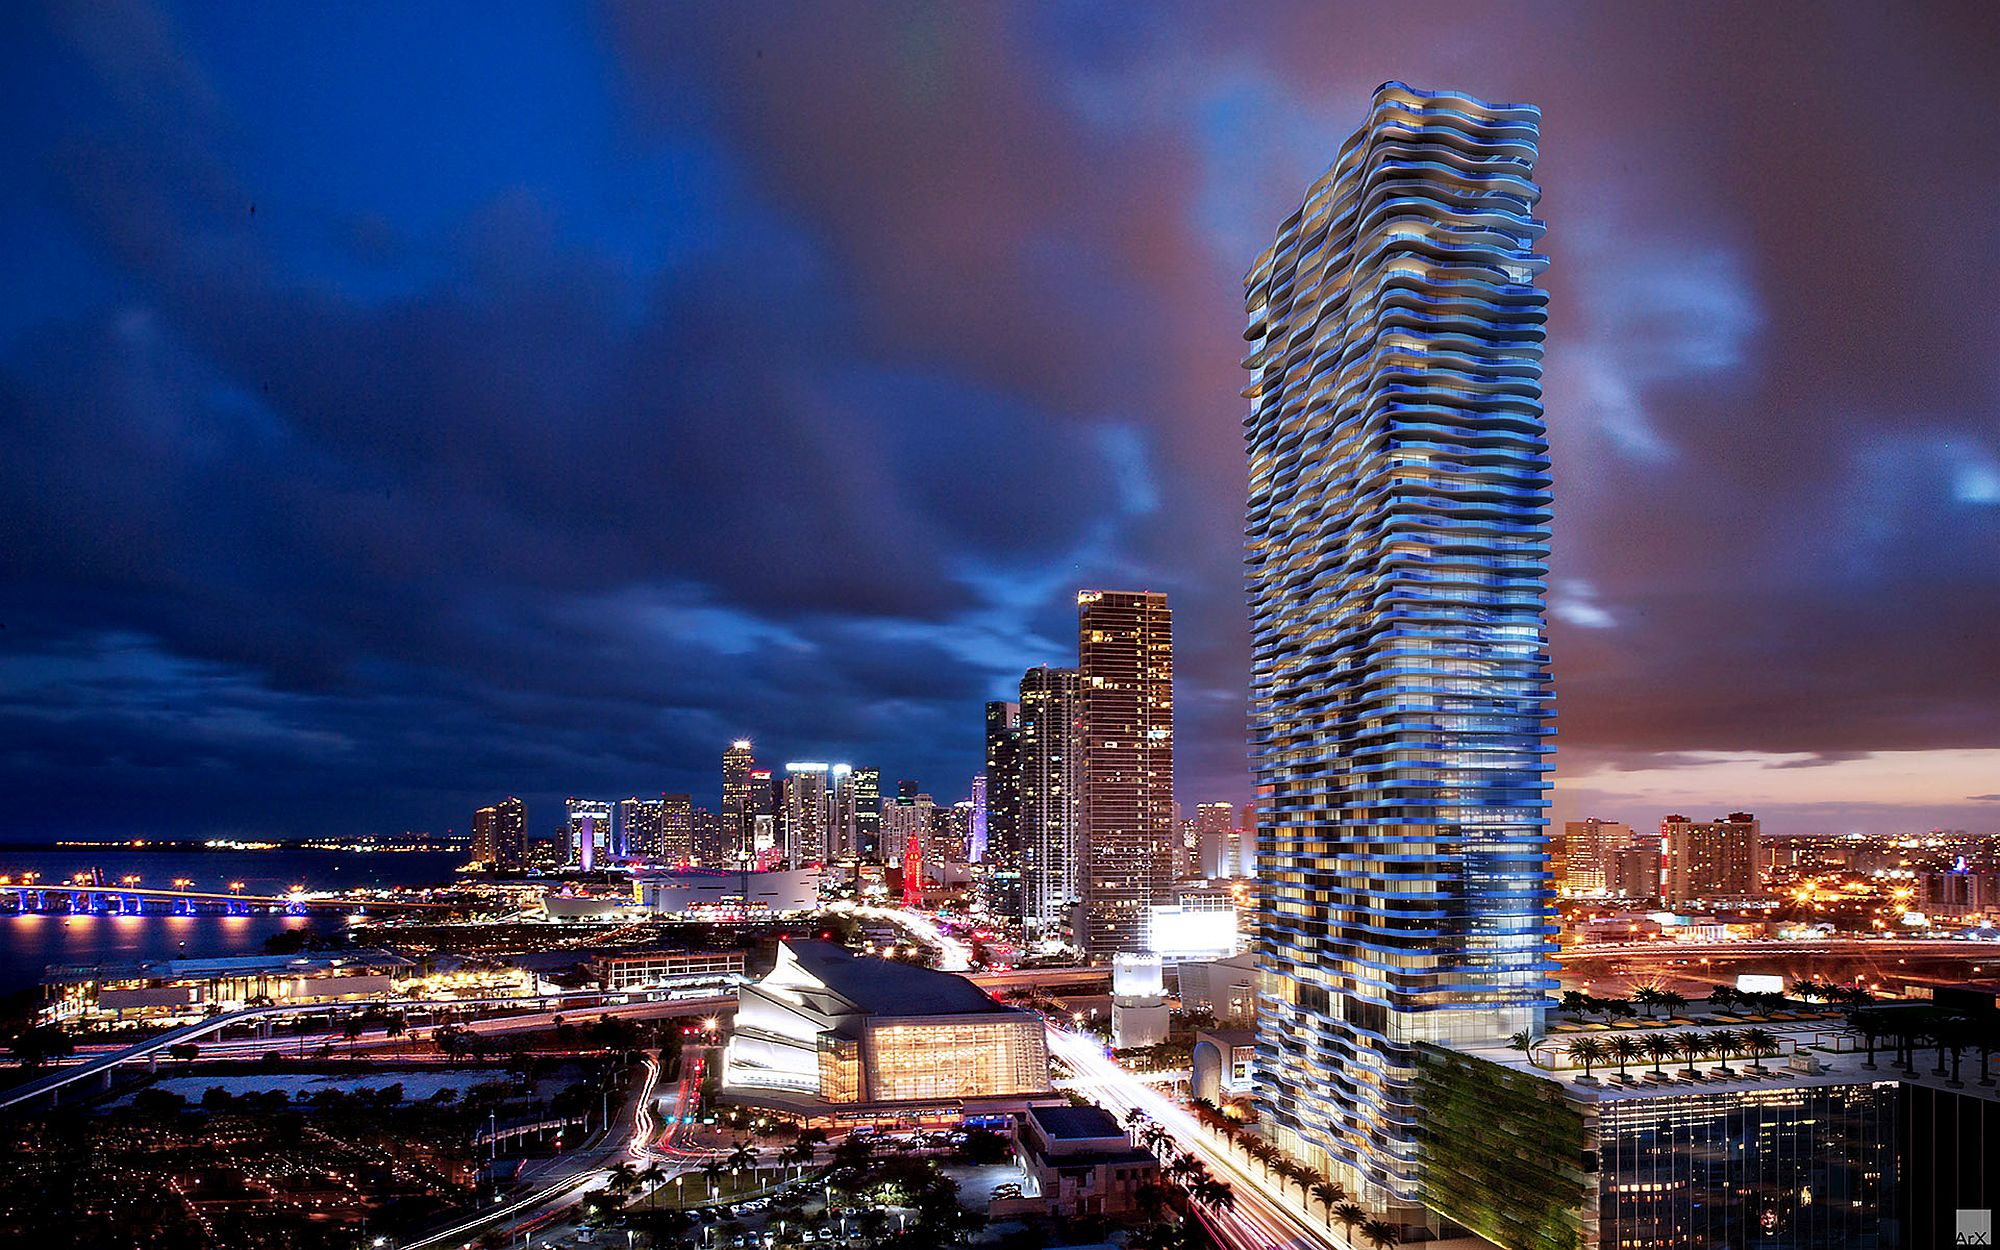 Auberge condos become a glittering new addition to iconic skyline of Miami Miami's Indulgent Best: 6 Breathtaking Condos Unveil a World Of Luxury